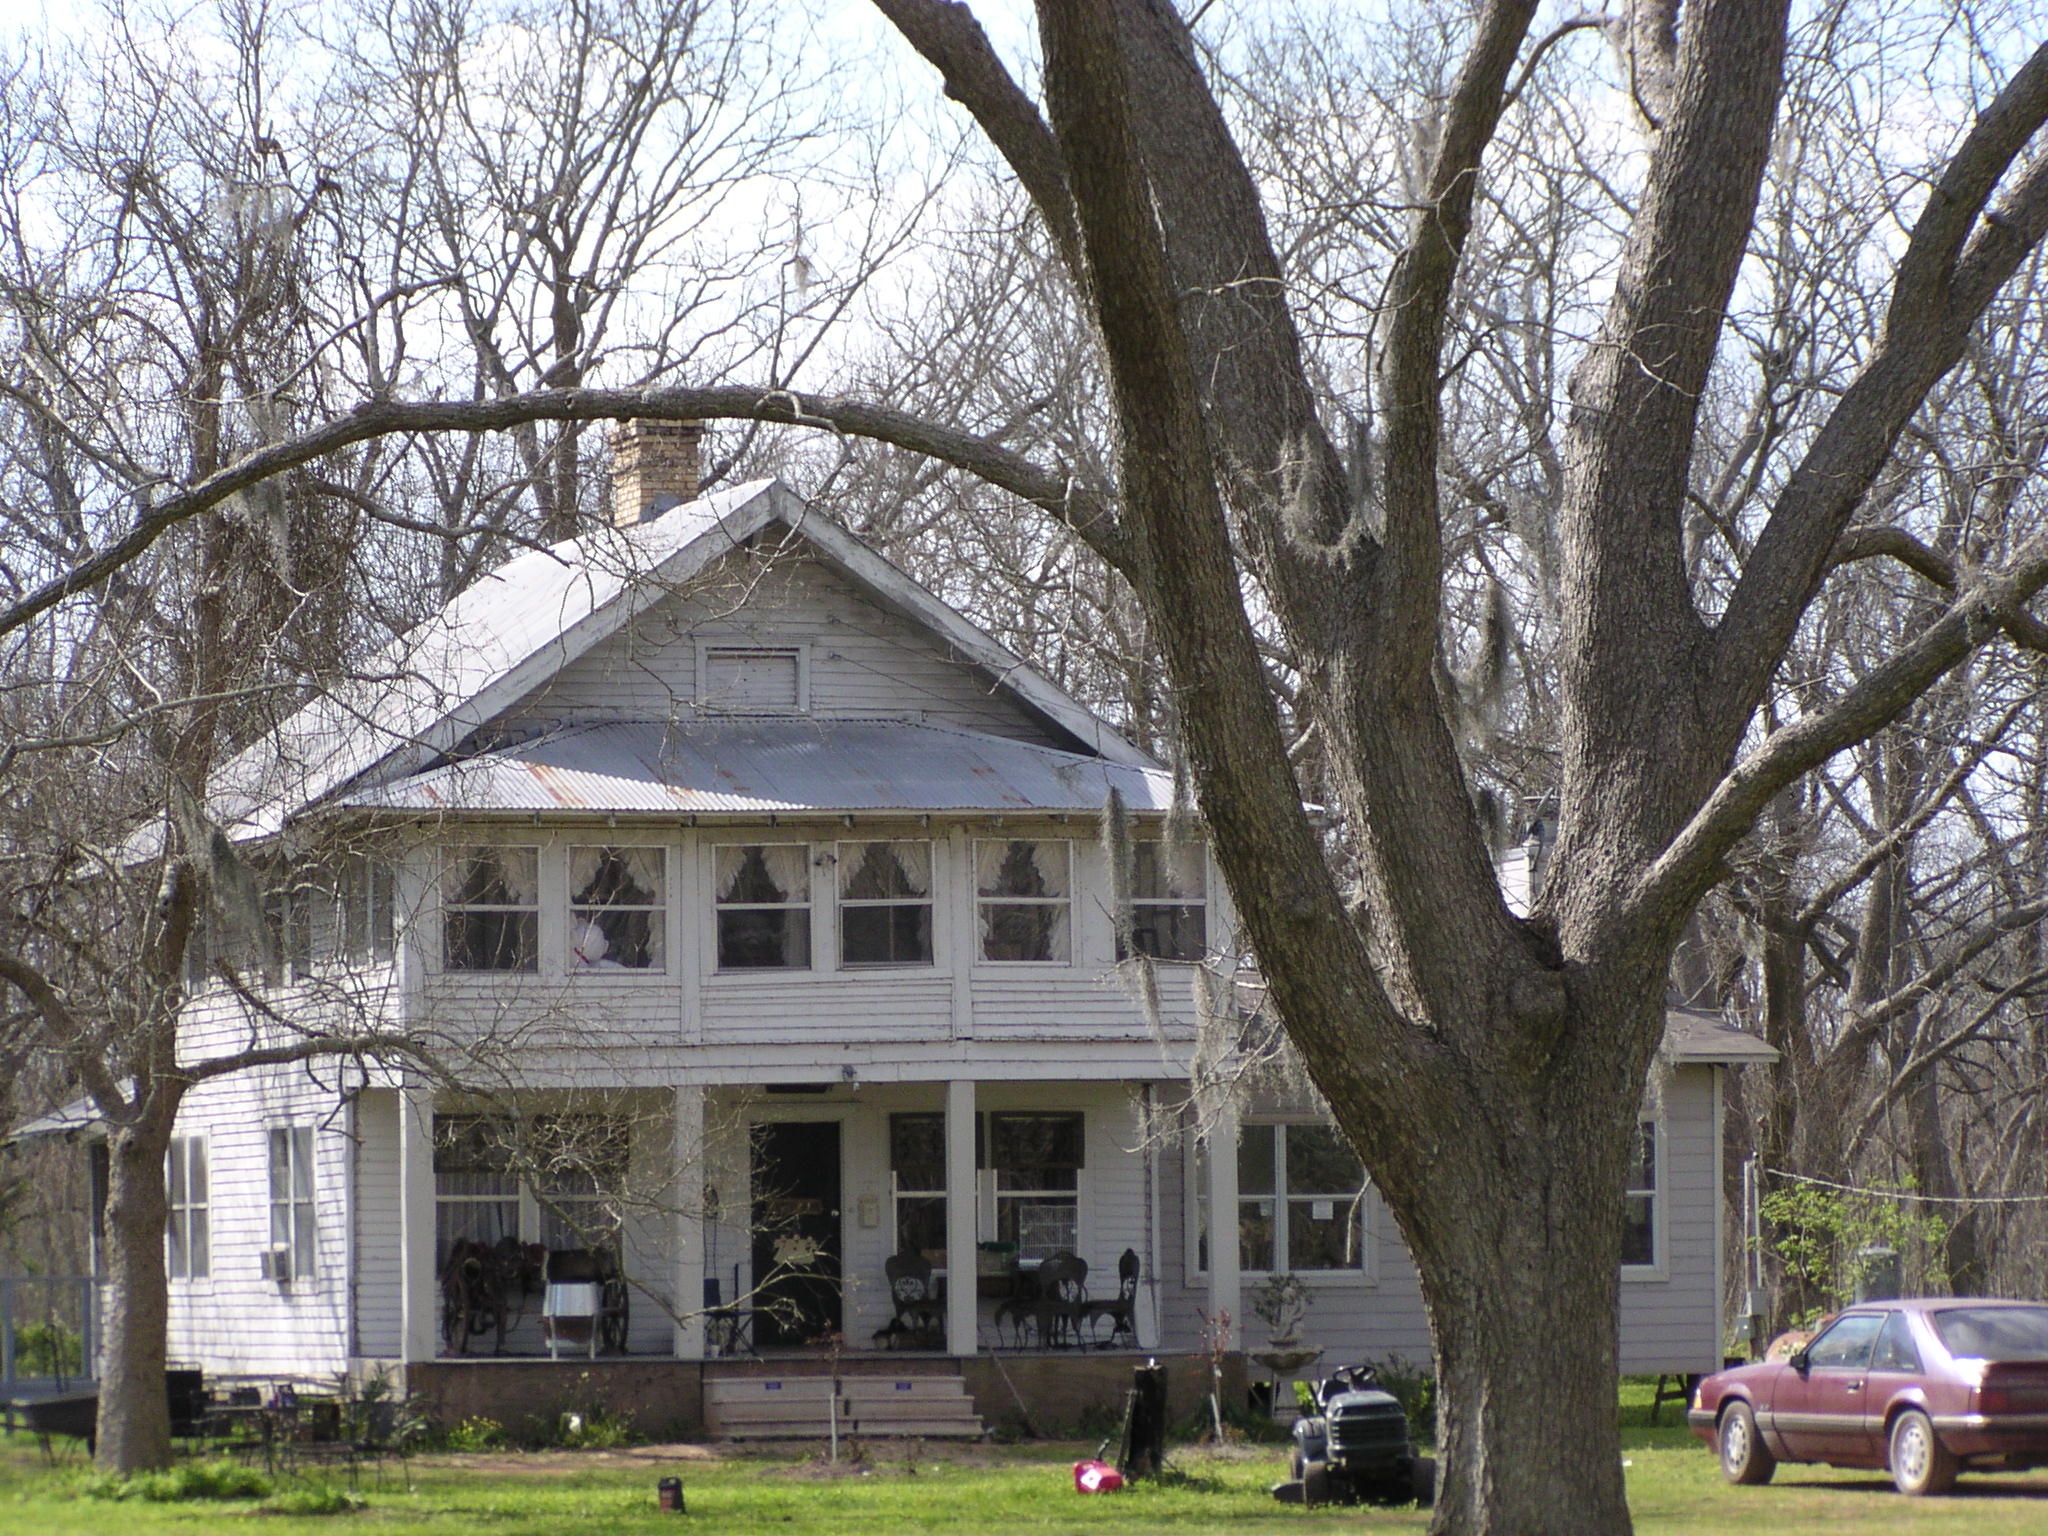 The Miller House was built around 1900 near the Juliff cotton gin, featuring 6 small bedrooms.